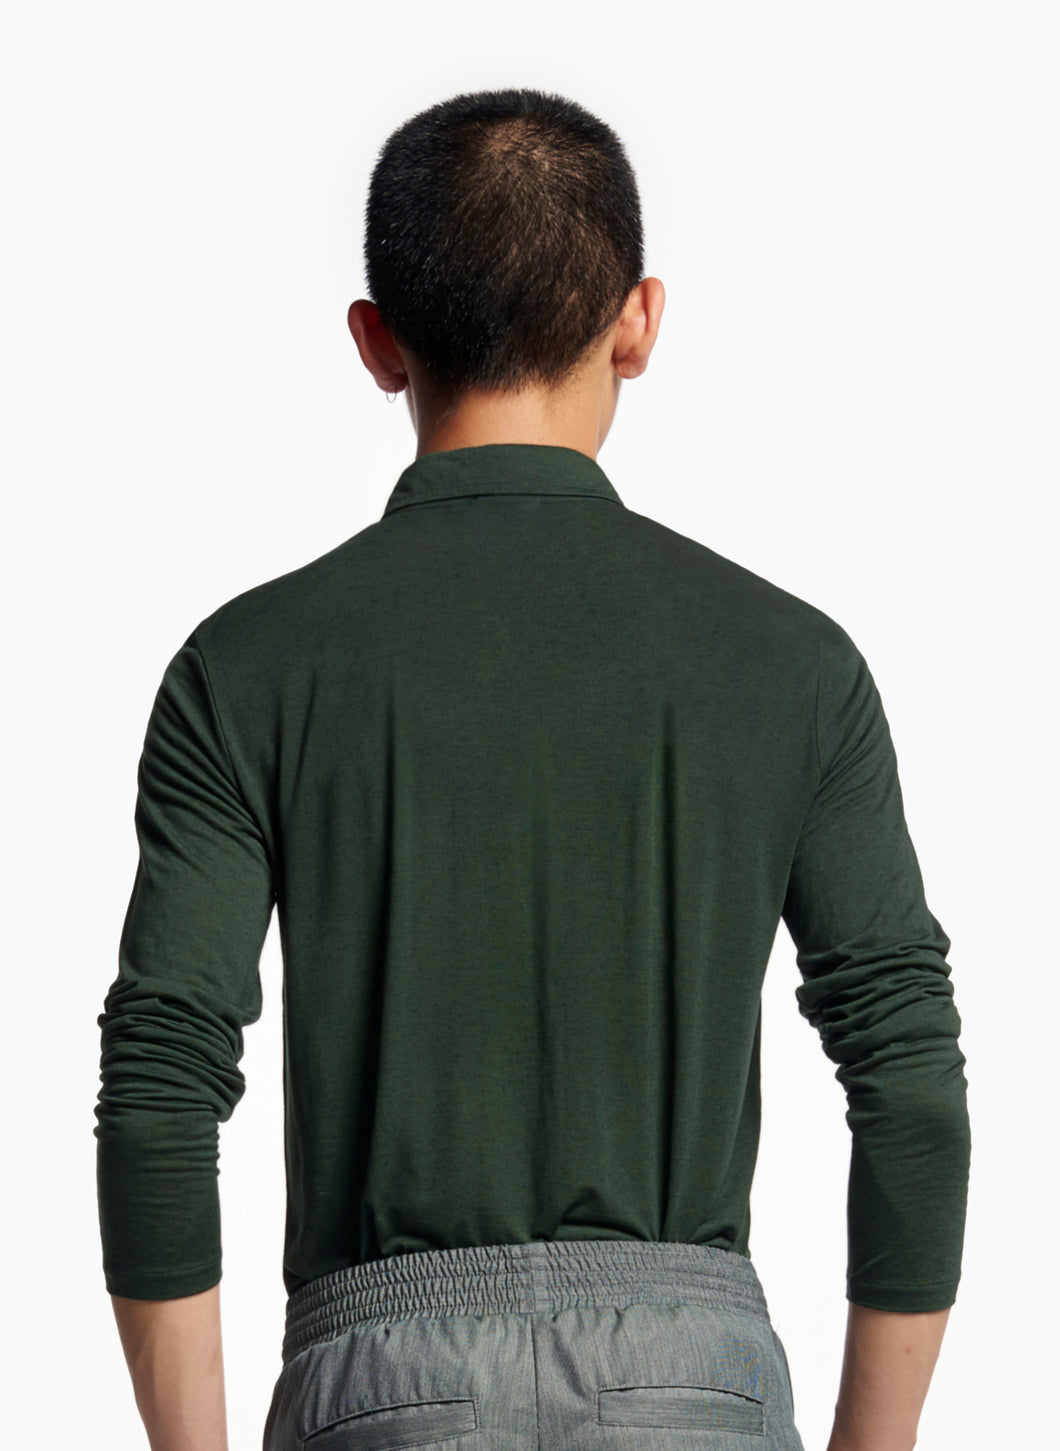 Long Sleeve Poloshirt in English Green Tencel